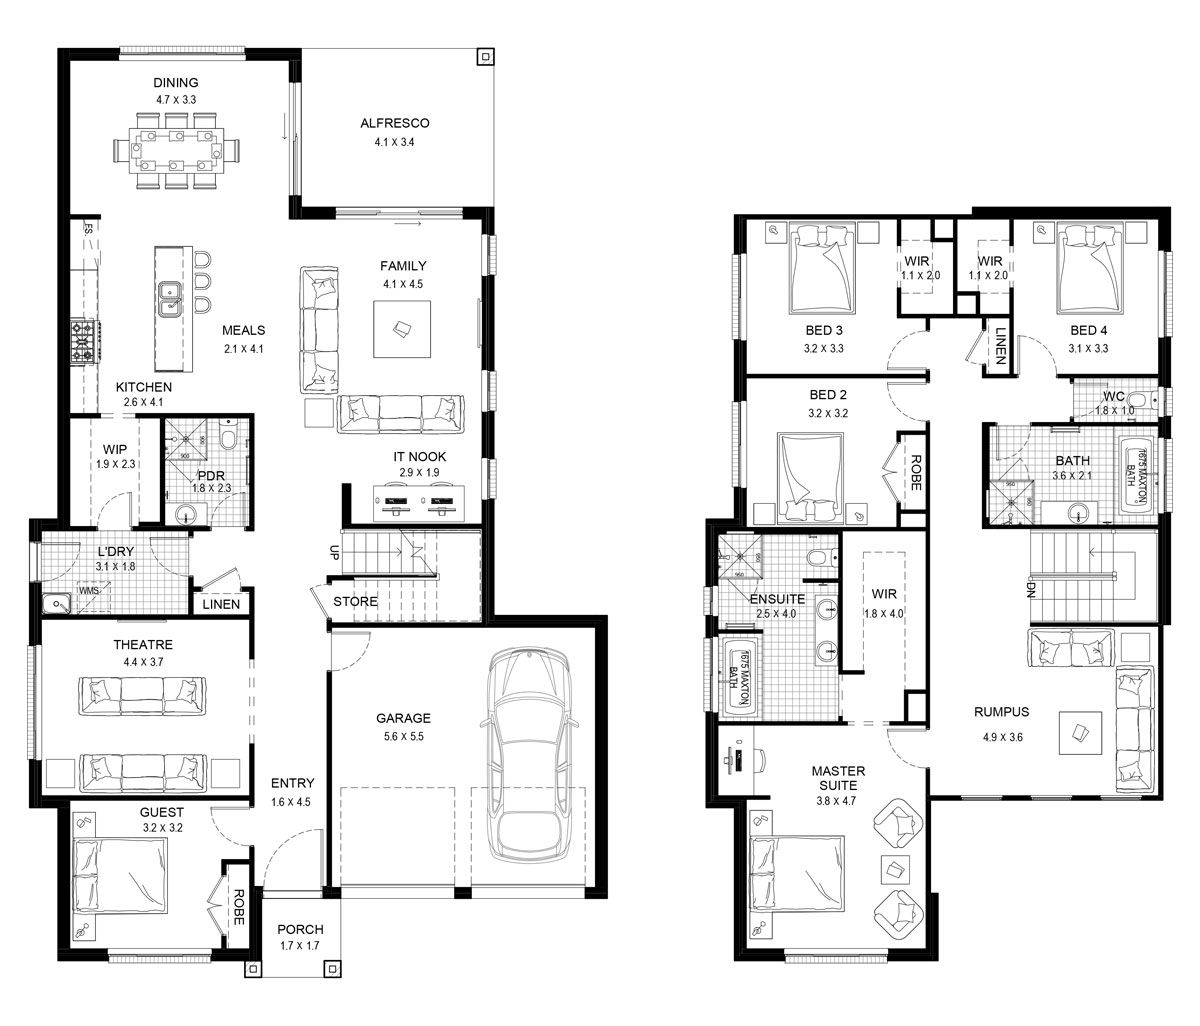 Mayfair 35 Double Level Floorplan By Kurmond Homes New Home Builders Sydney Nsw Double Storey House Plans Two Story House Plans Dream House Plans